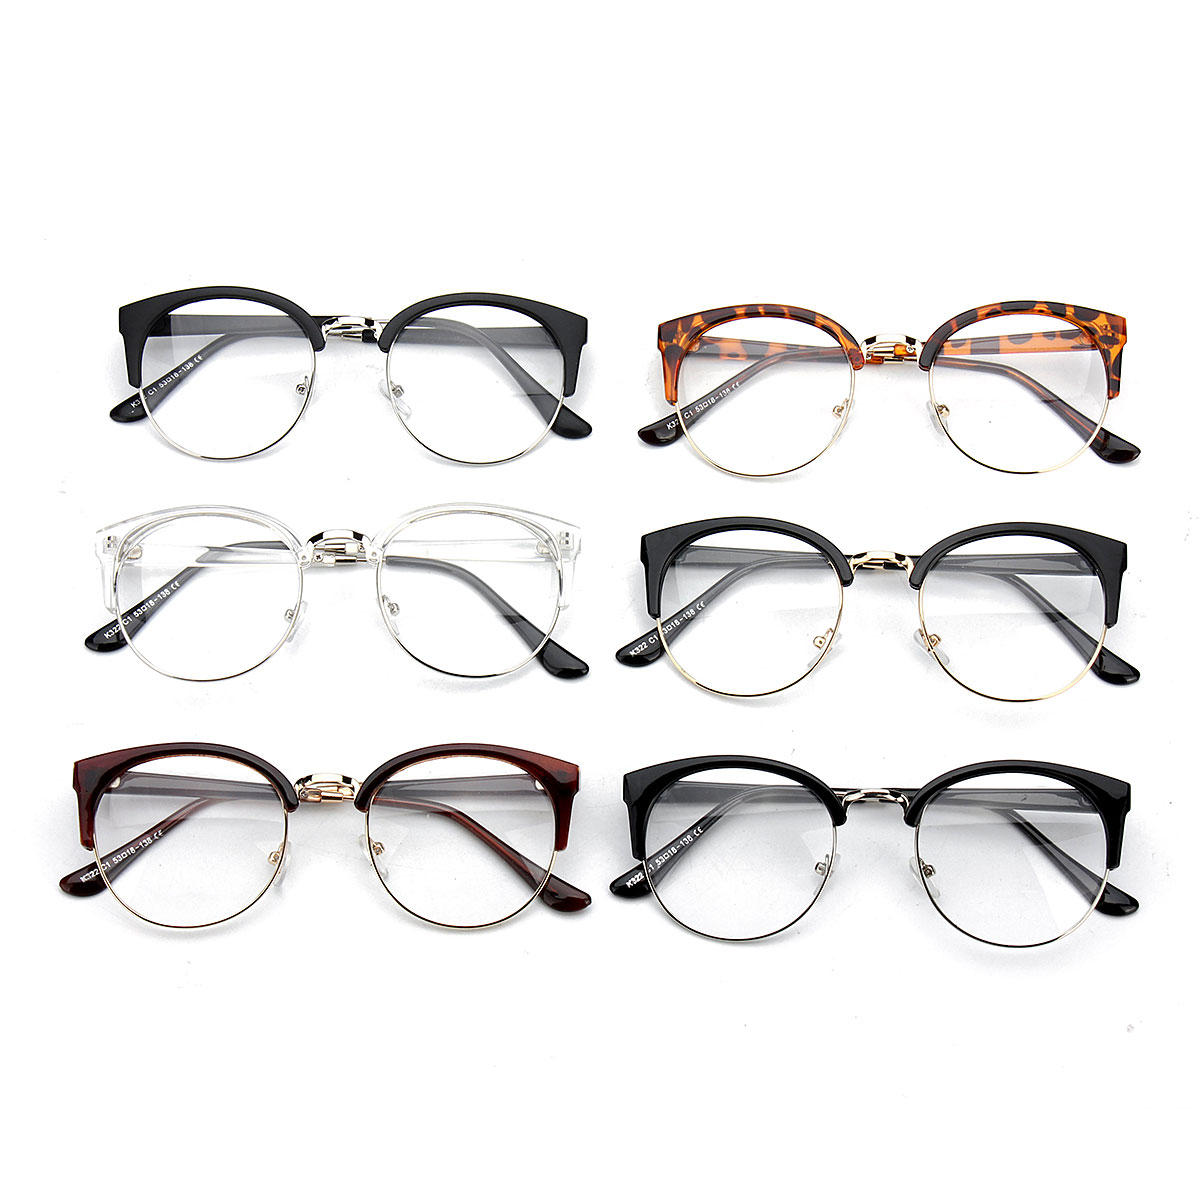 35fb2d35aff Women Vintage Nerd Glasses Clear Lens Eyewear Men Retro Round Metal Frame  Glasses COD